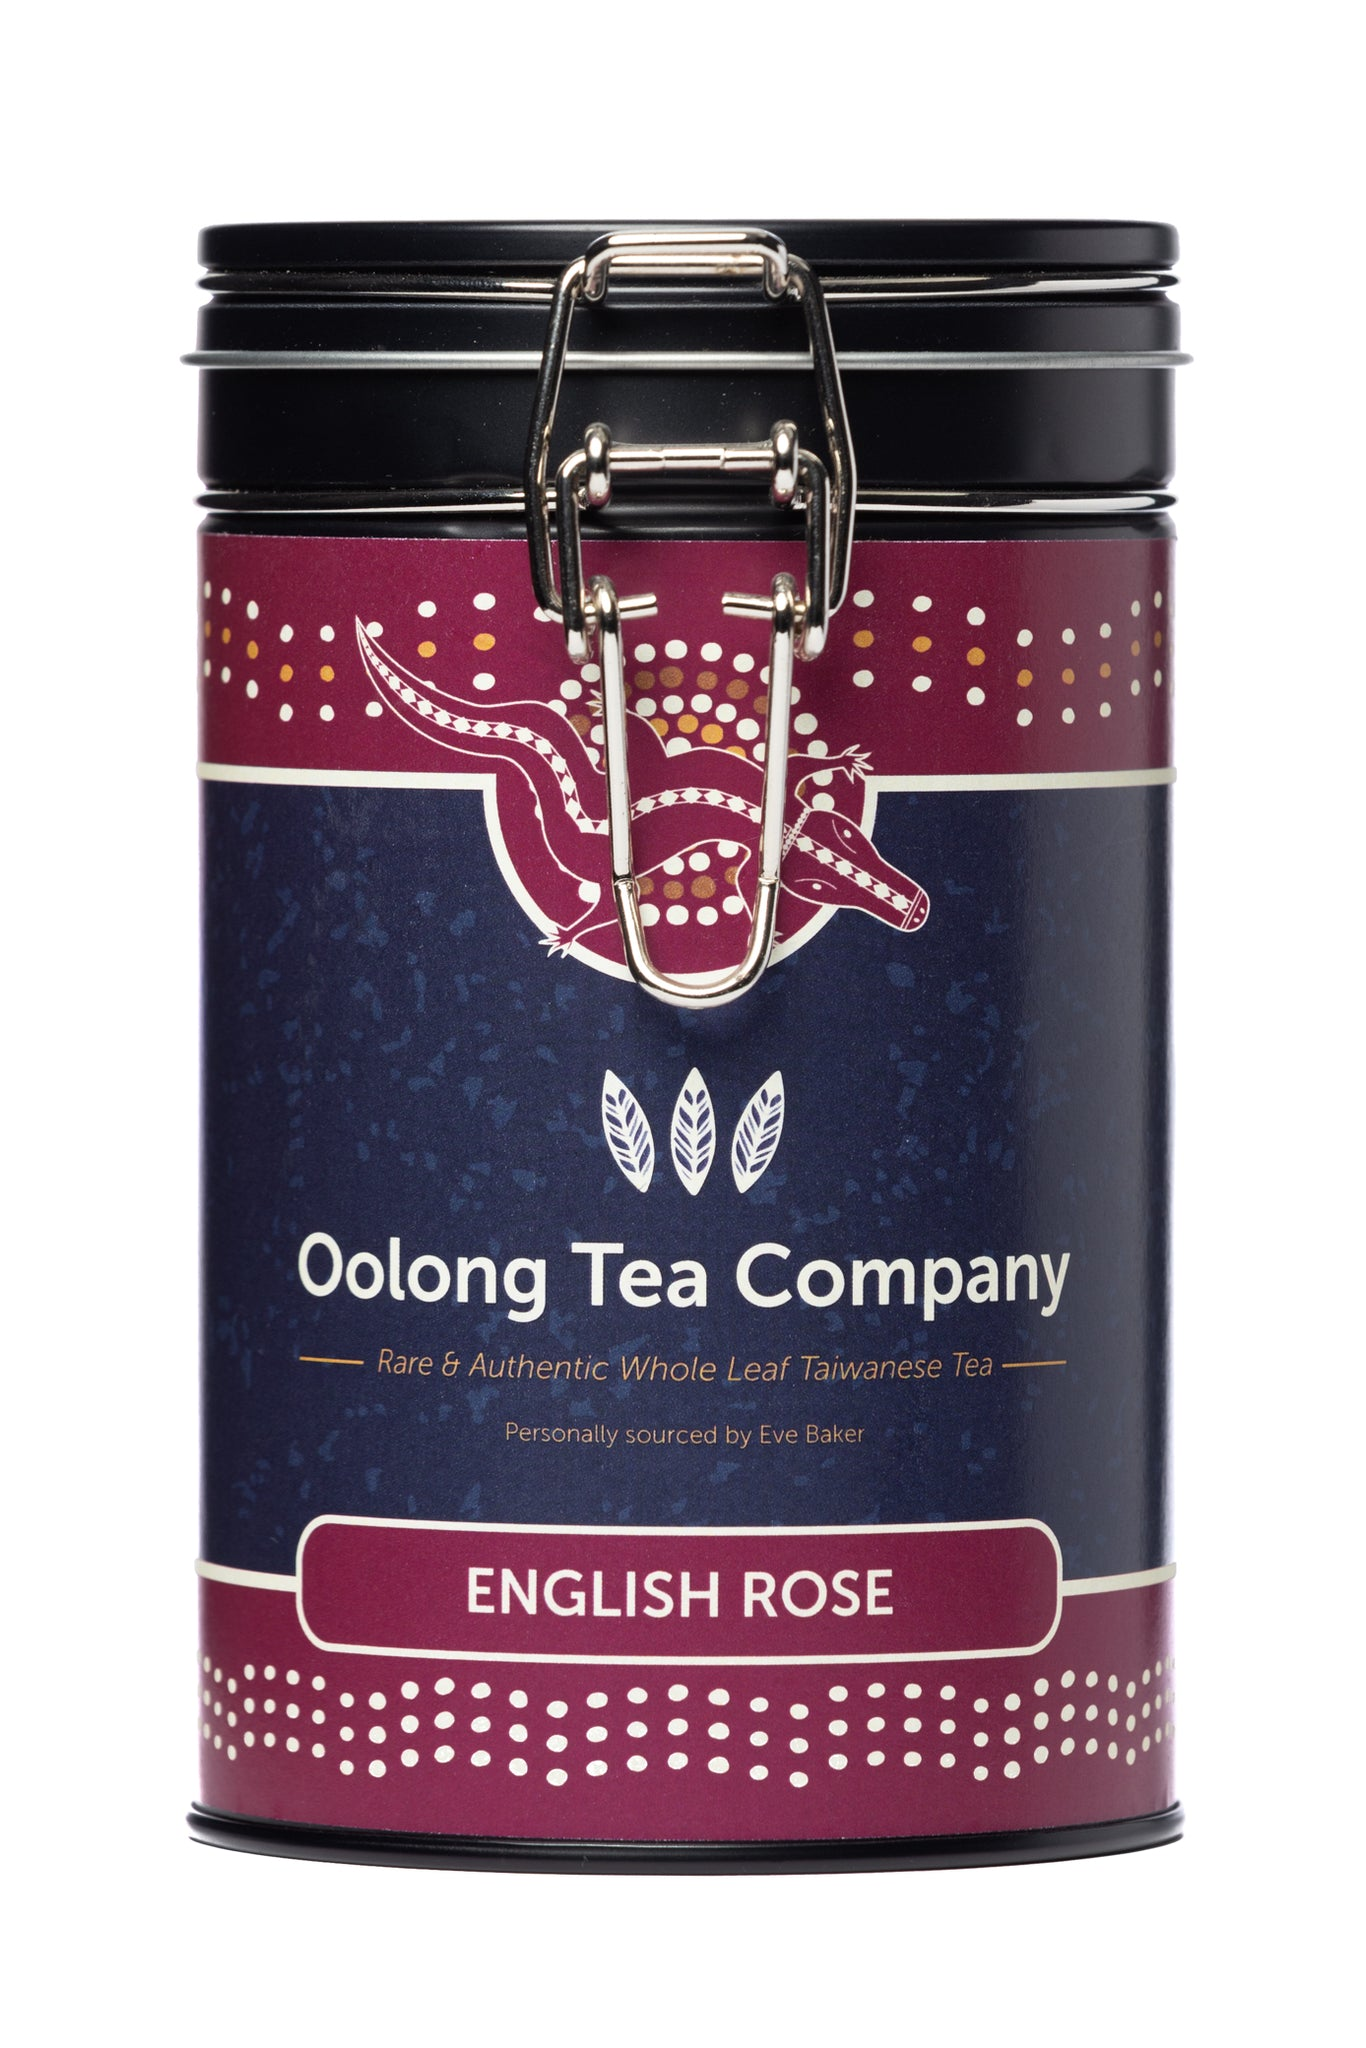 75 grams of loose leaf English Rose Oolong tea from the Nantou county of Taiwan in a round black tea caddy with an easy opening silver clip